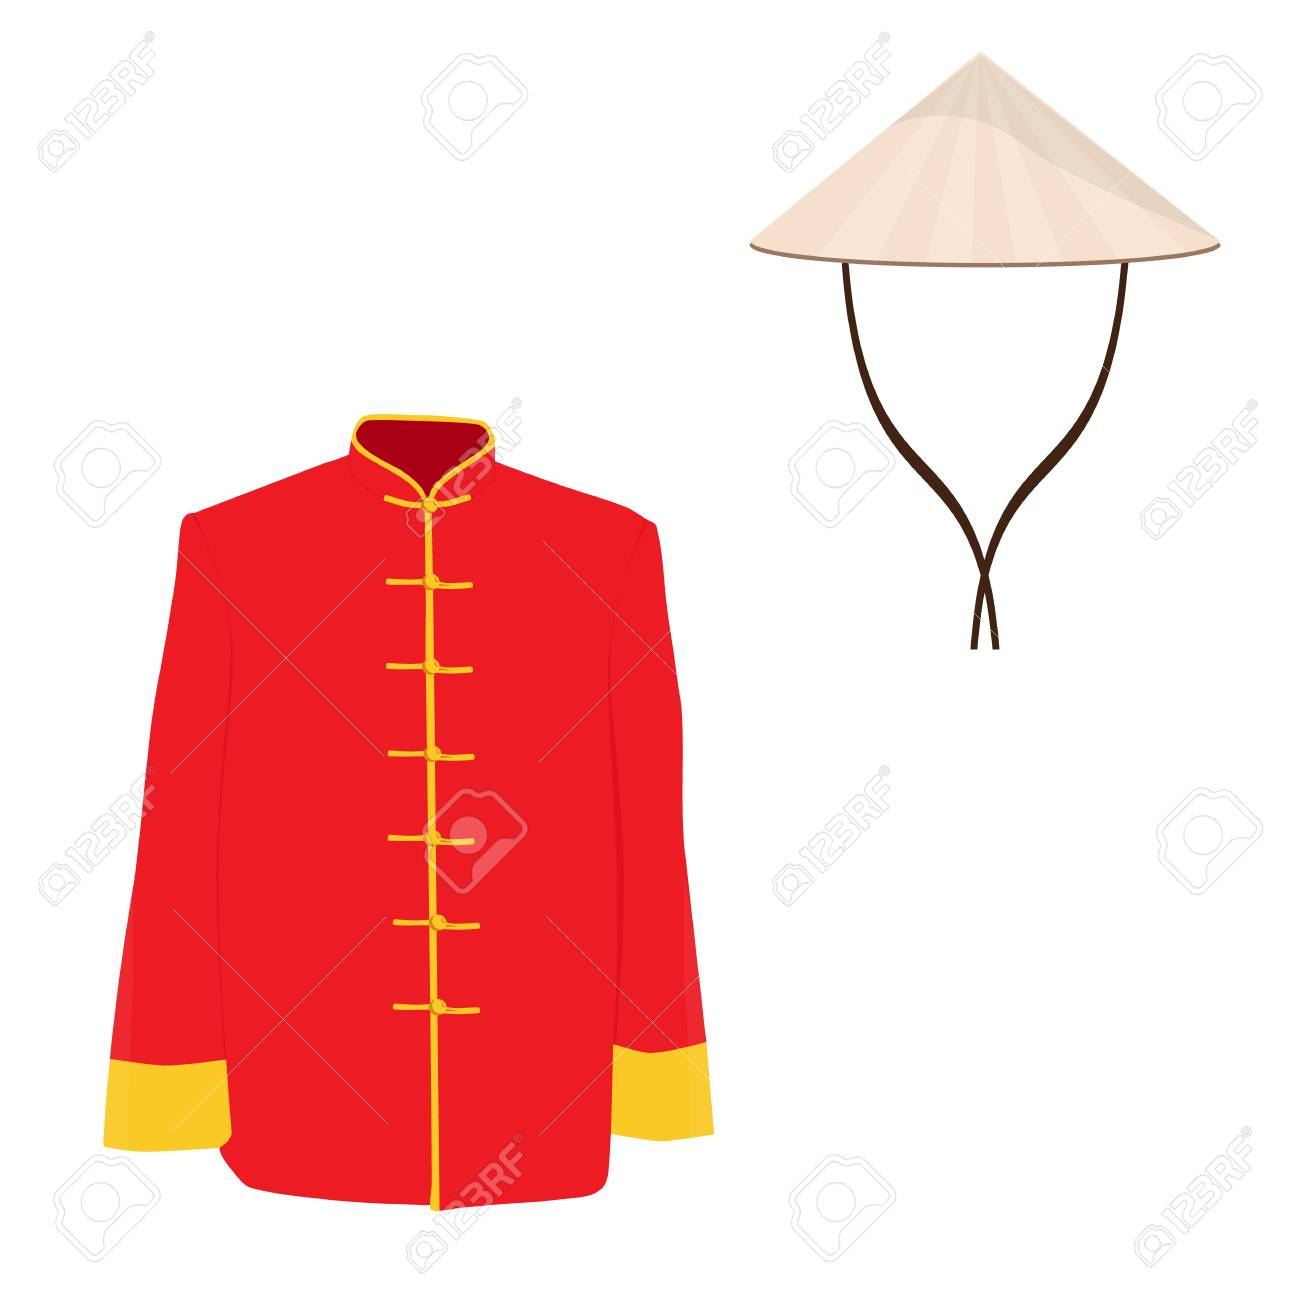 Chinese man traditional costume.